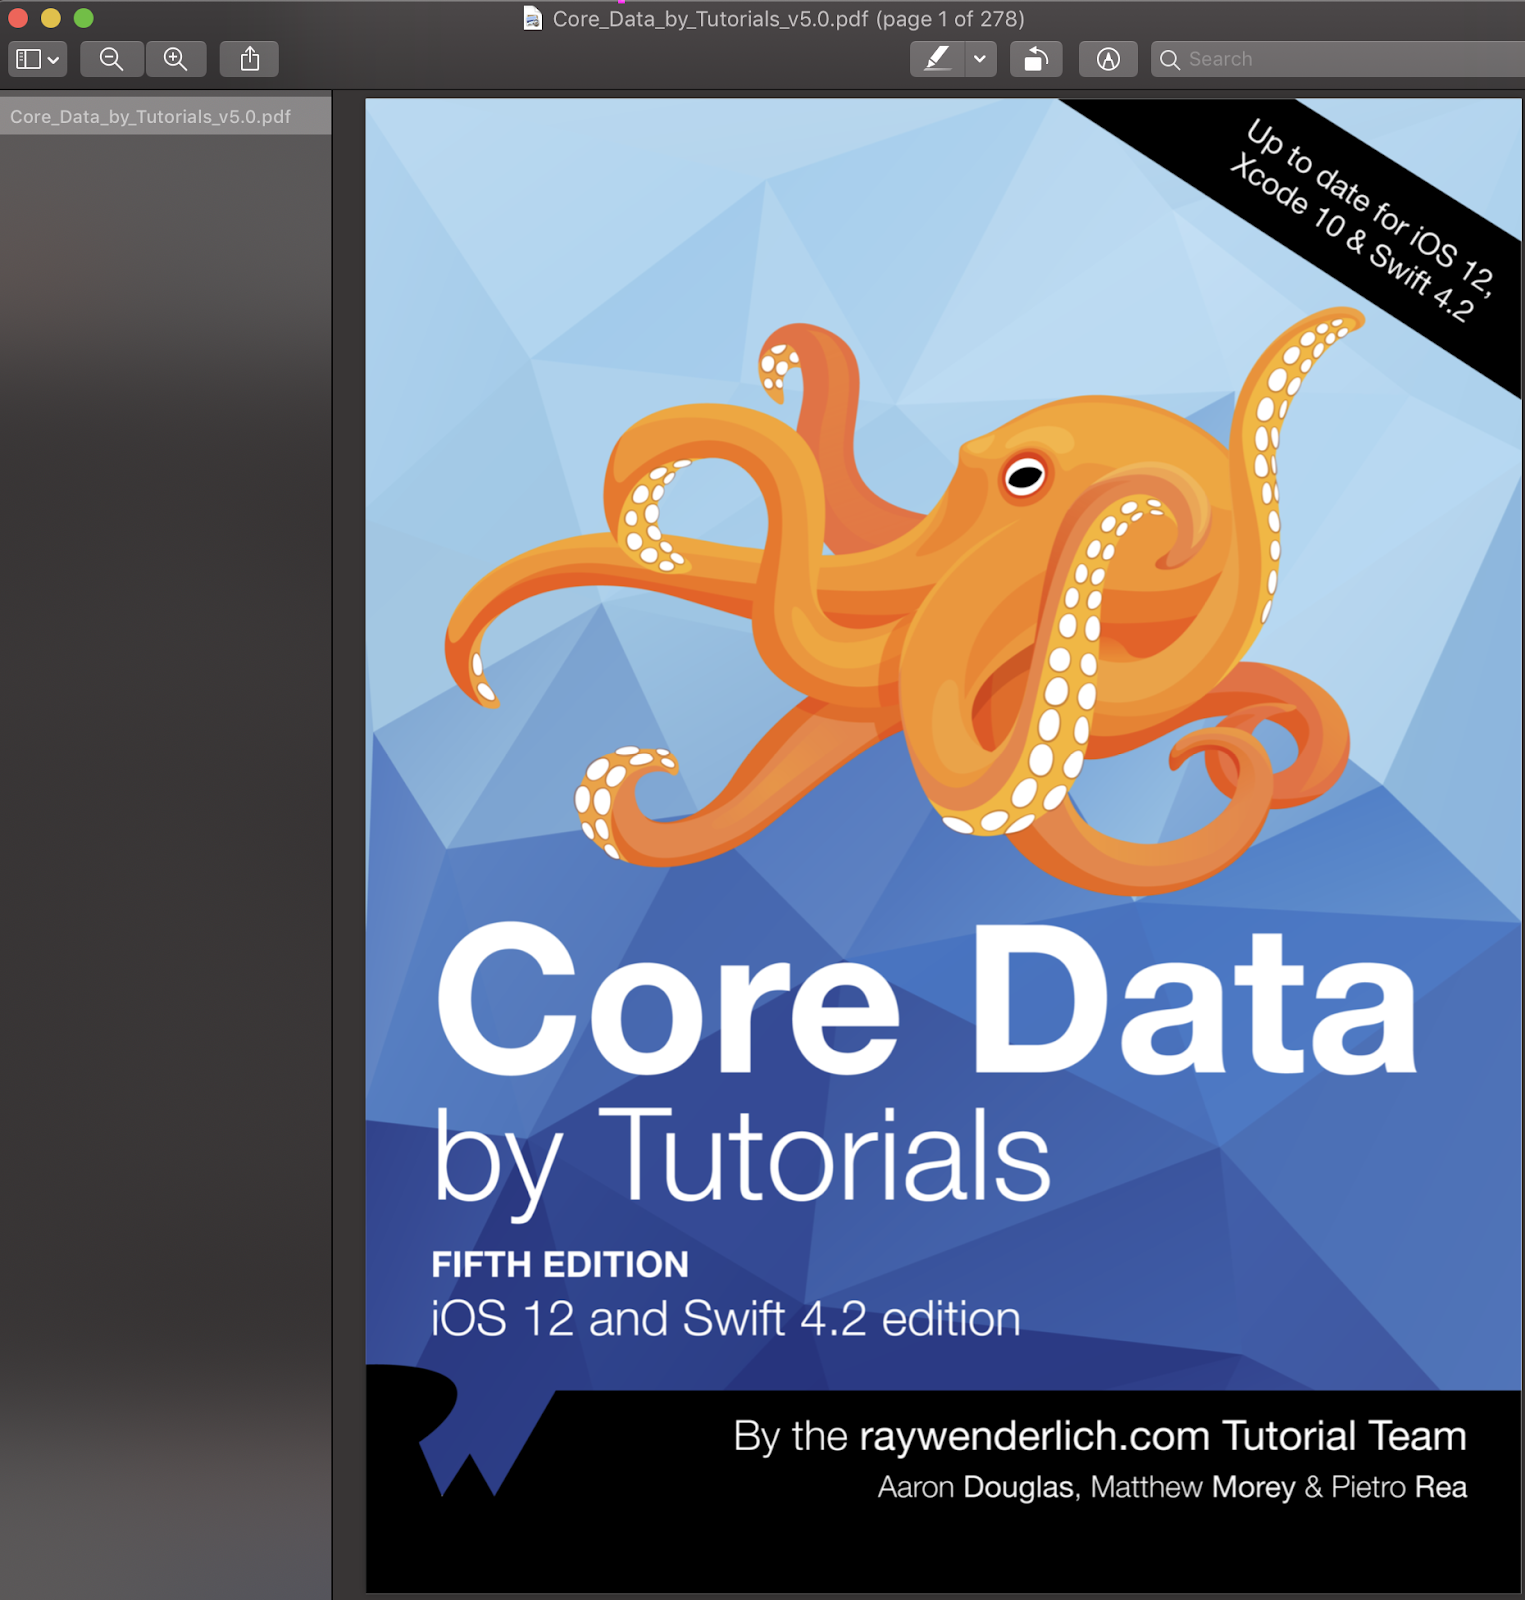 Core Data By Tutorials Fifth Edition IOS 12 and Swift 4 2